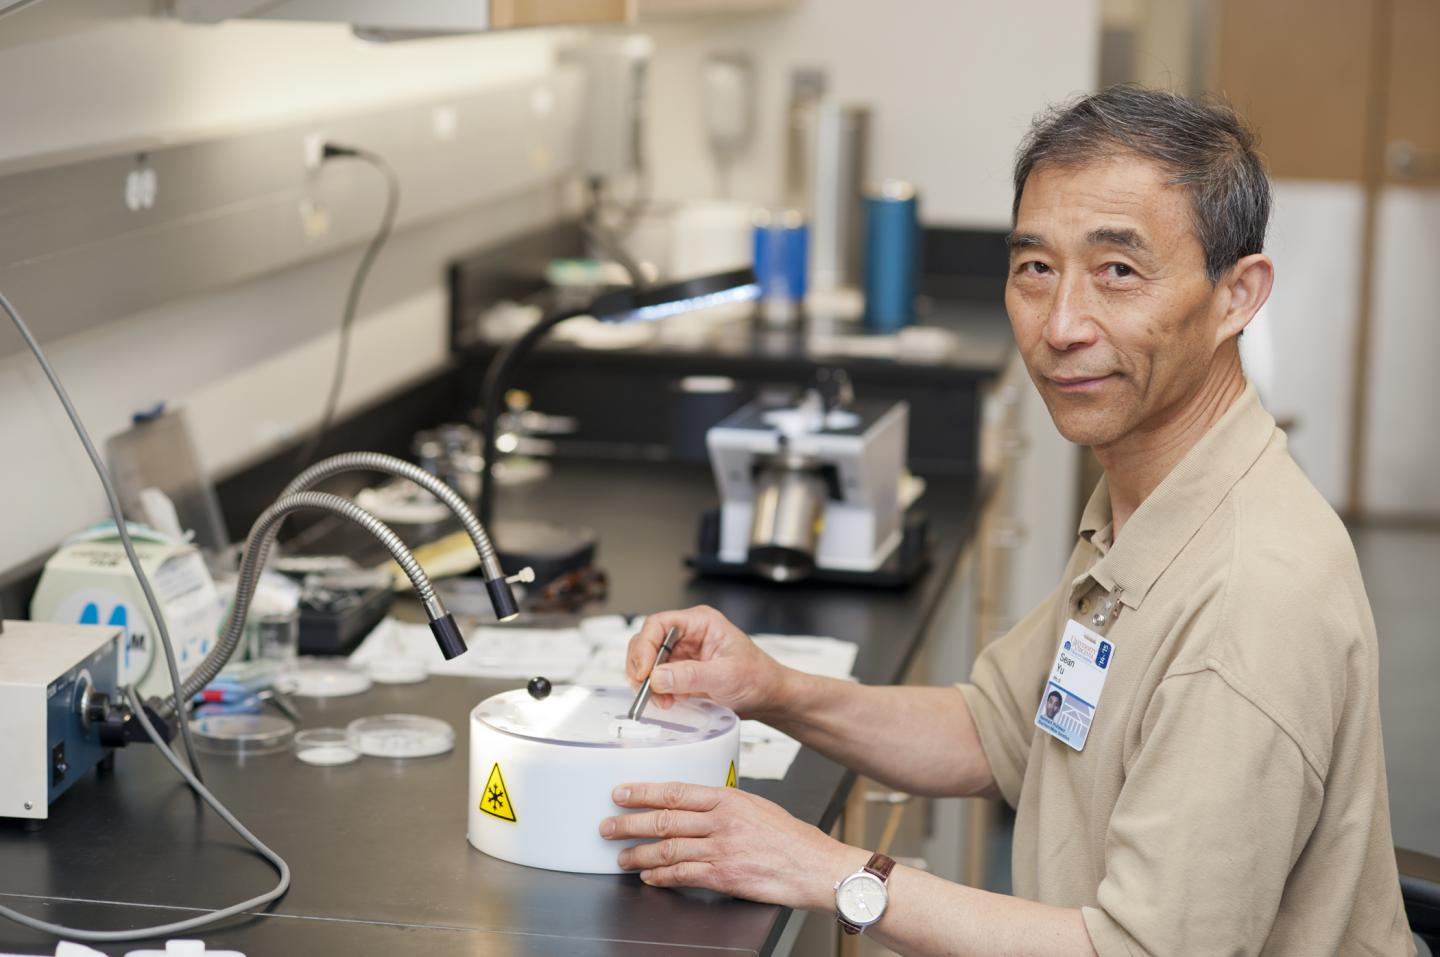 Xiong (Sean) Yu, Ph.D., demonstrates a step in the process of prepping a sample for analysis. image: Kay Taylor | University of Virginia Health System